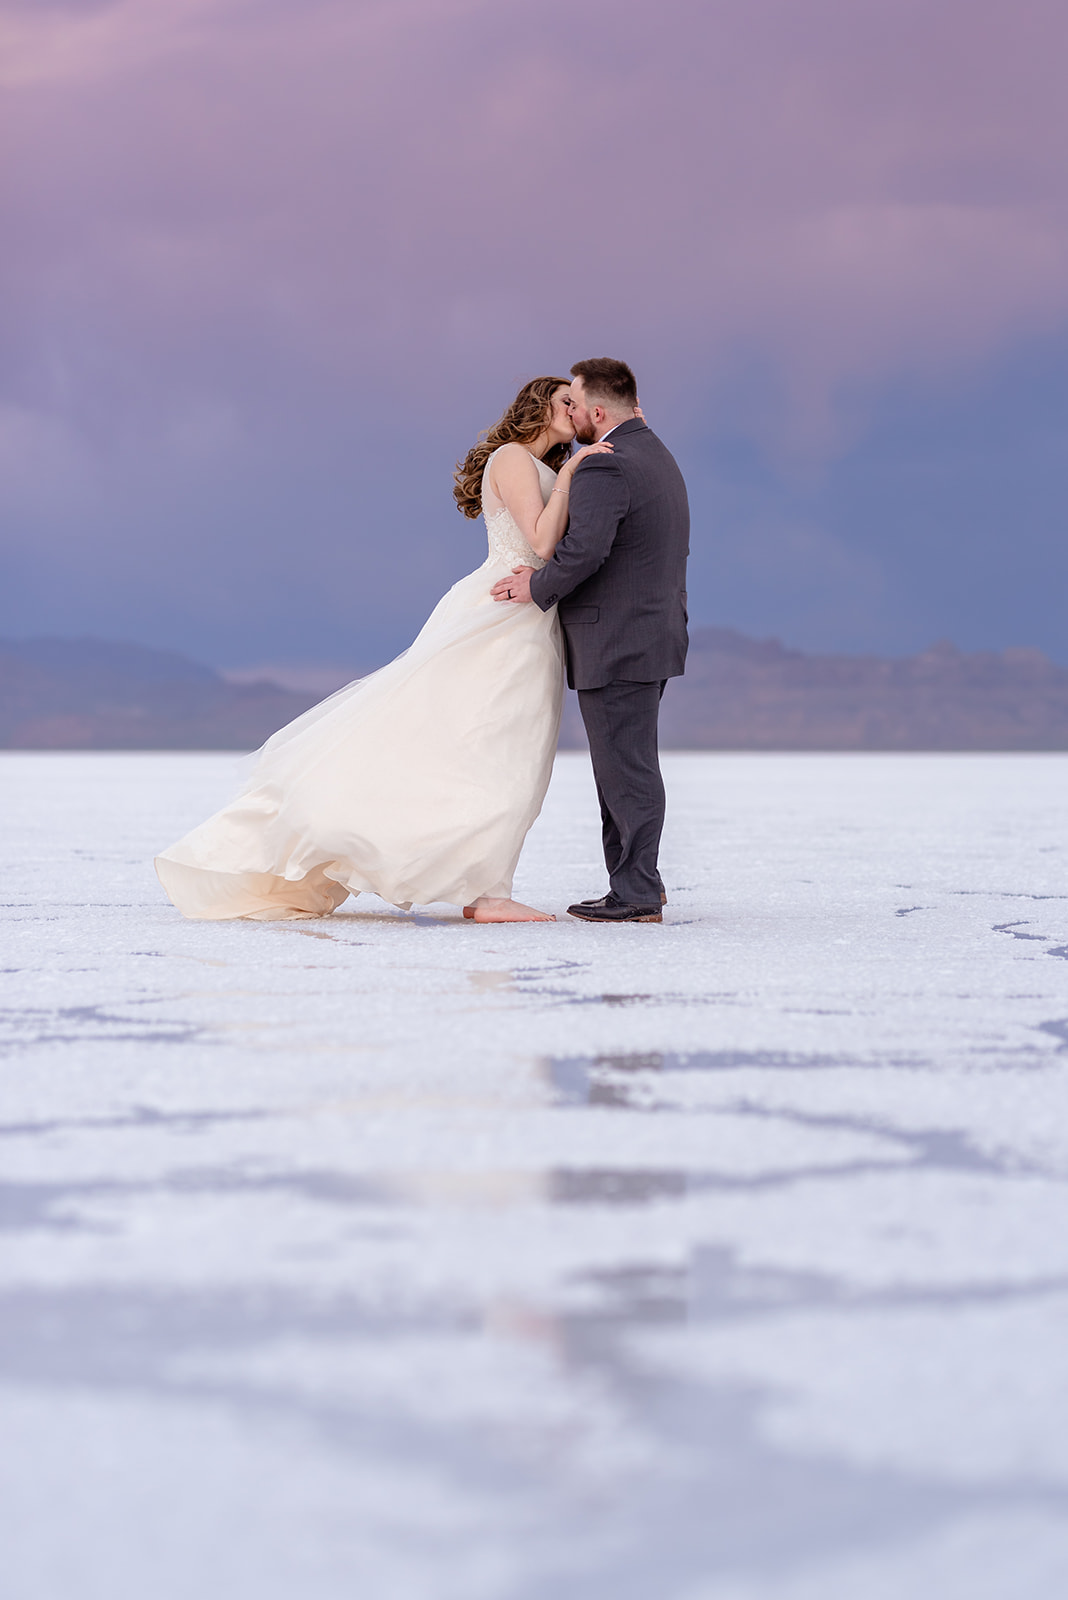 Bride and Groom portraits at the Bonneville Salt Falts in Utah. Stormy Sunset at the Salt Flats. Grey suit and blue tie combo. Ivory and Gold wedding dress. Taken by Coley Cook Photography.